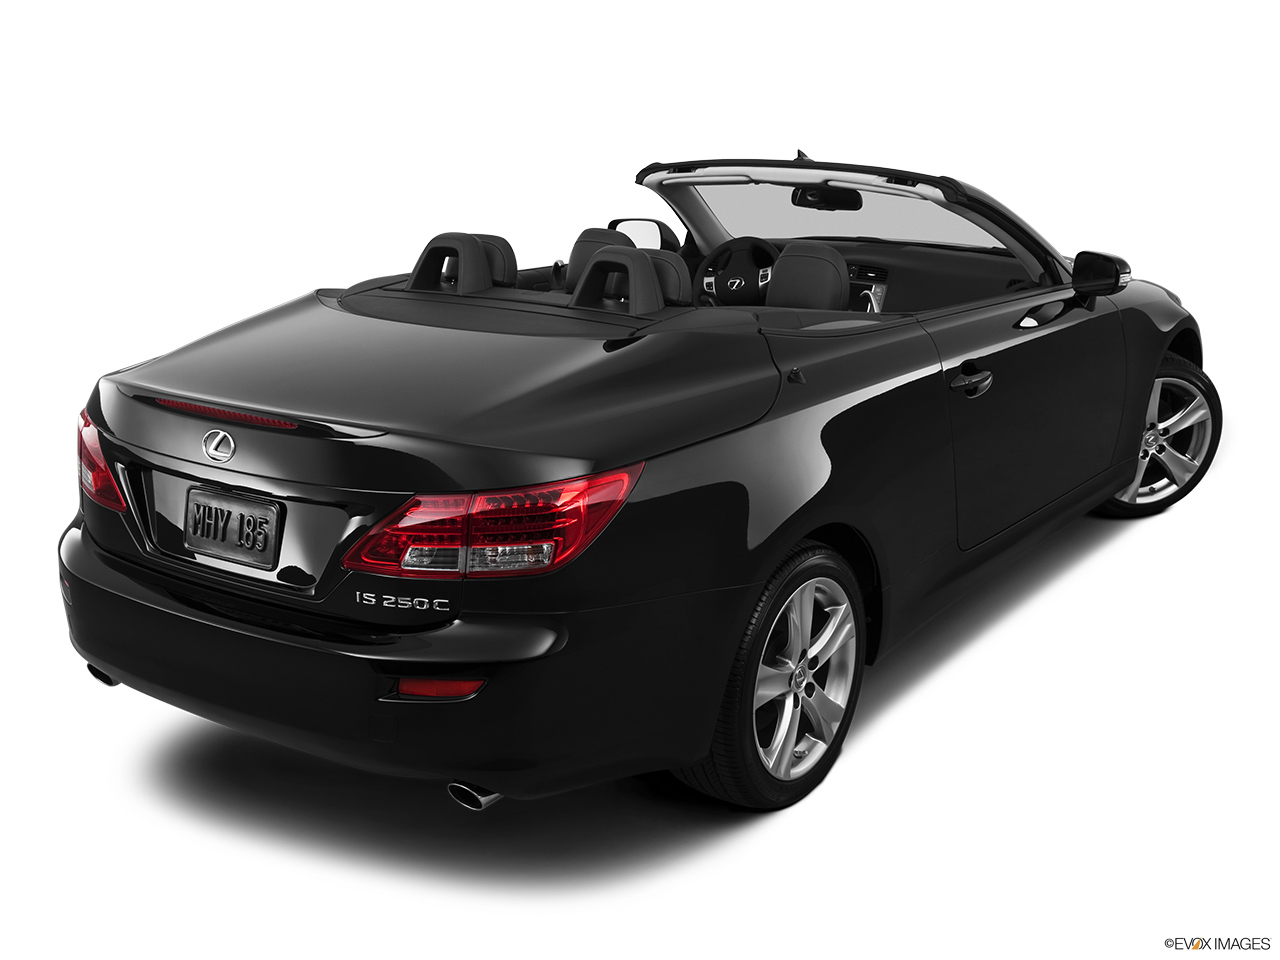 2015 lexus is 250c convertible - front angle view 2015 lexus is